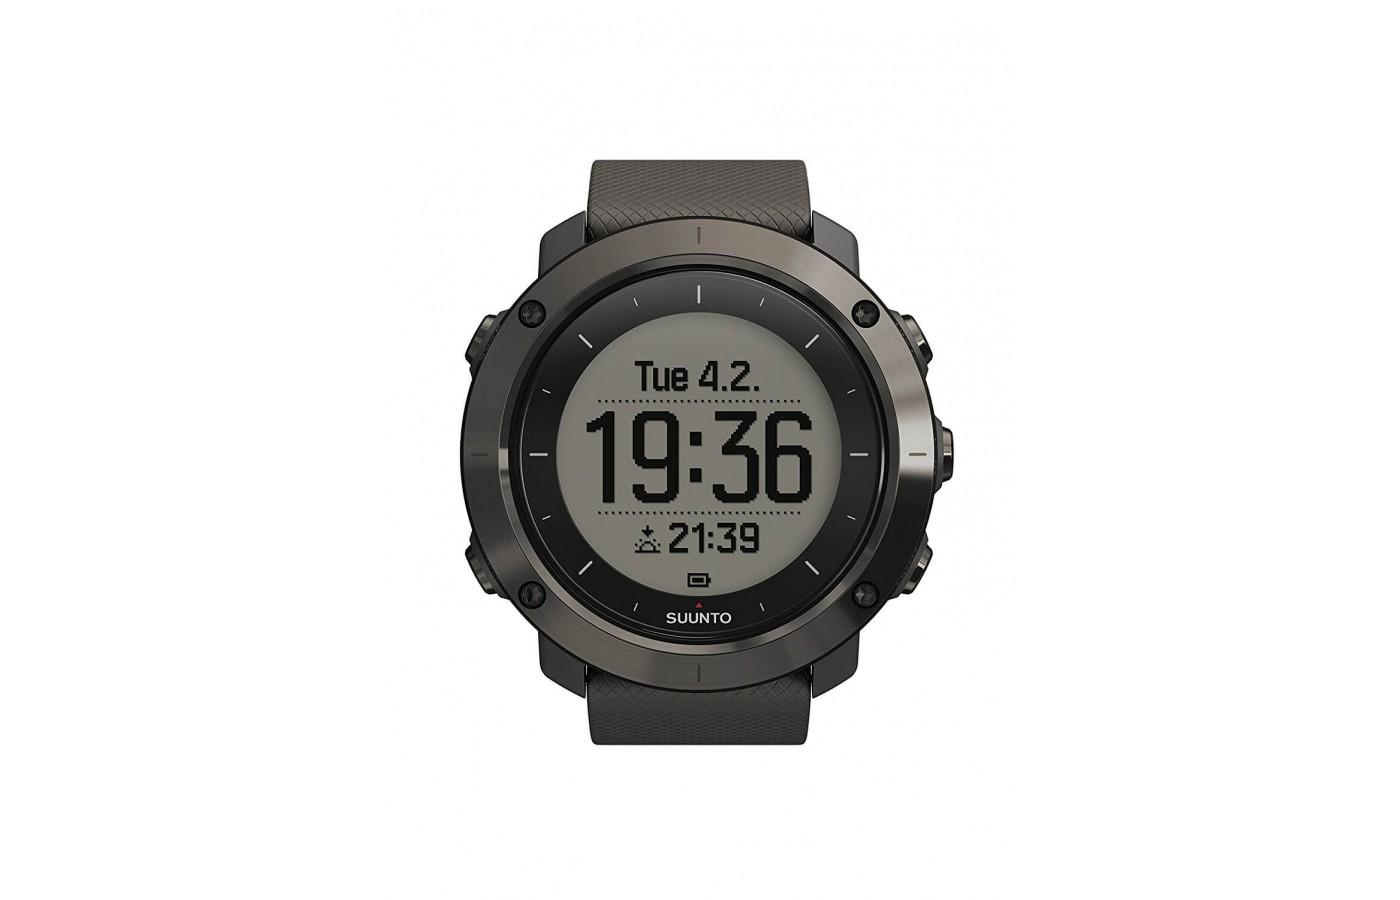 Suunto Traverse has a sleek design